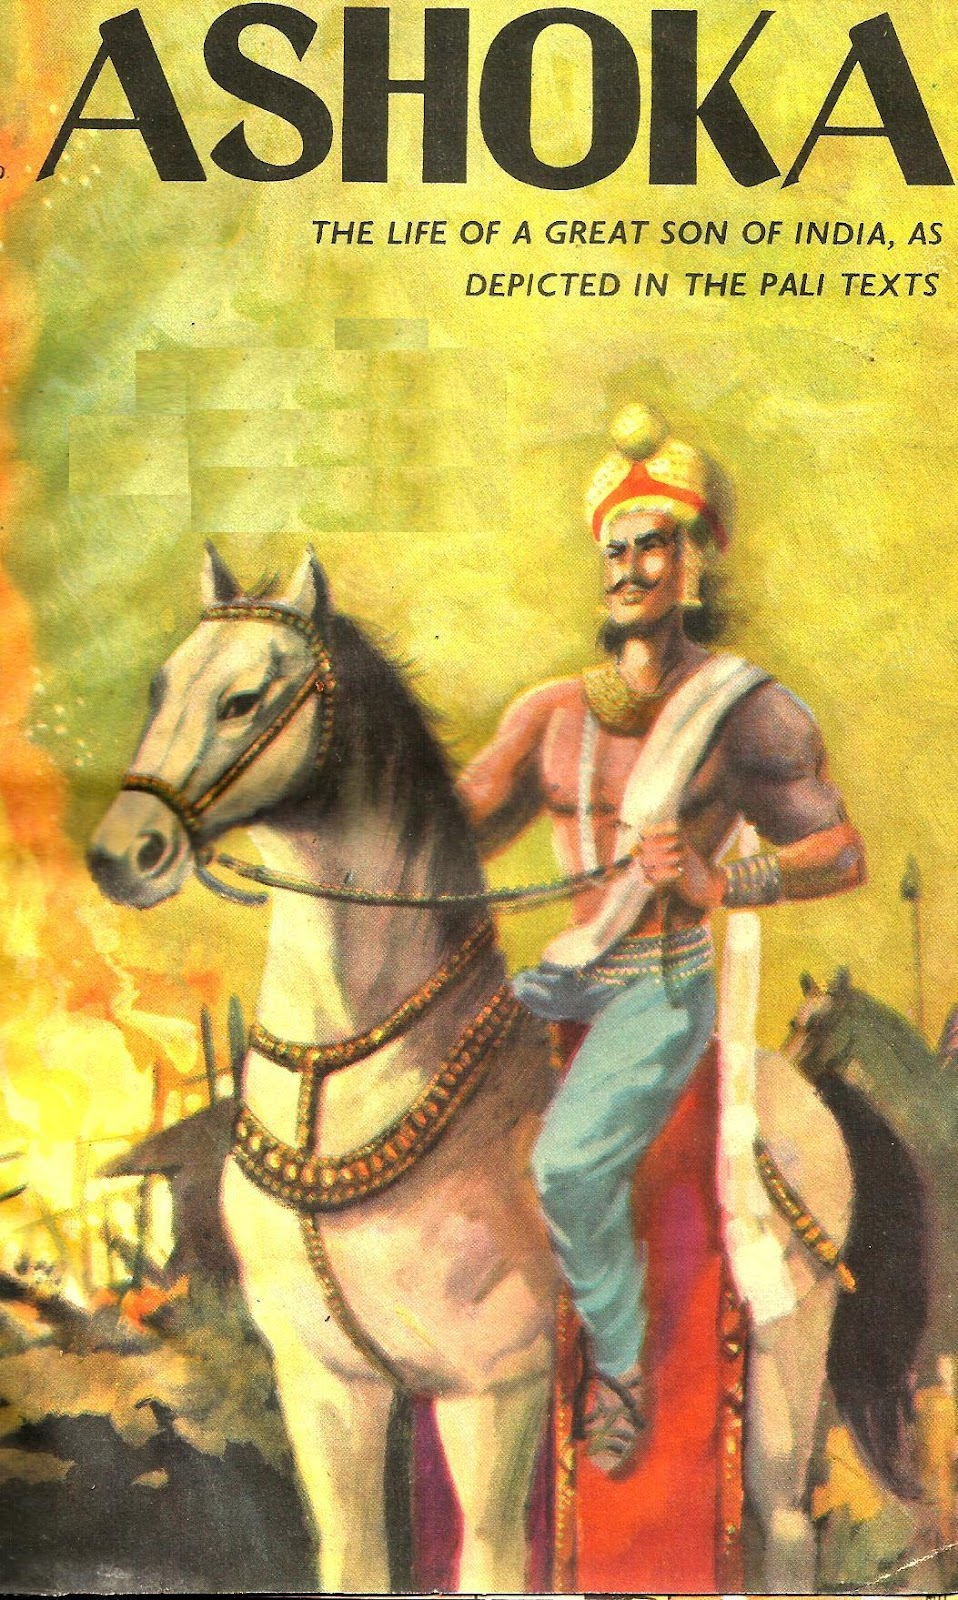 Ashoka The Great http://manashsubhaditya.blogspot.com/2012/08/ashoka-great-great-king-of-ancient.html